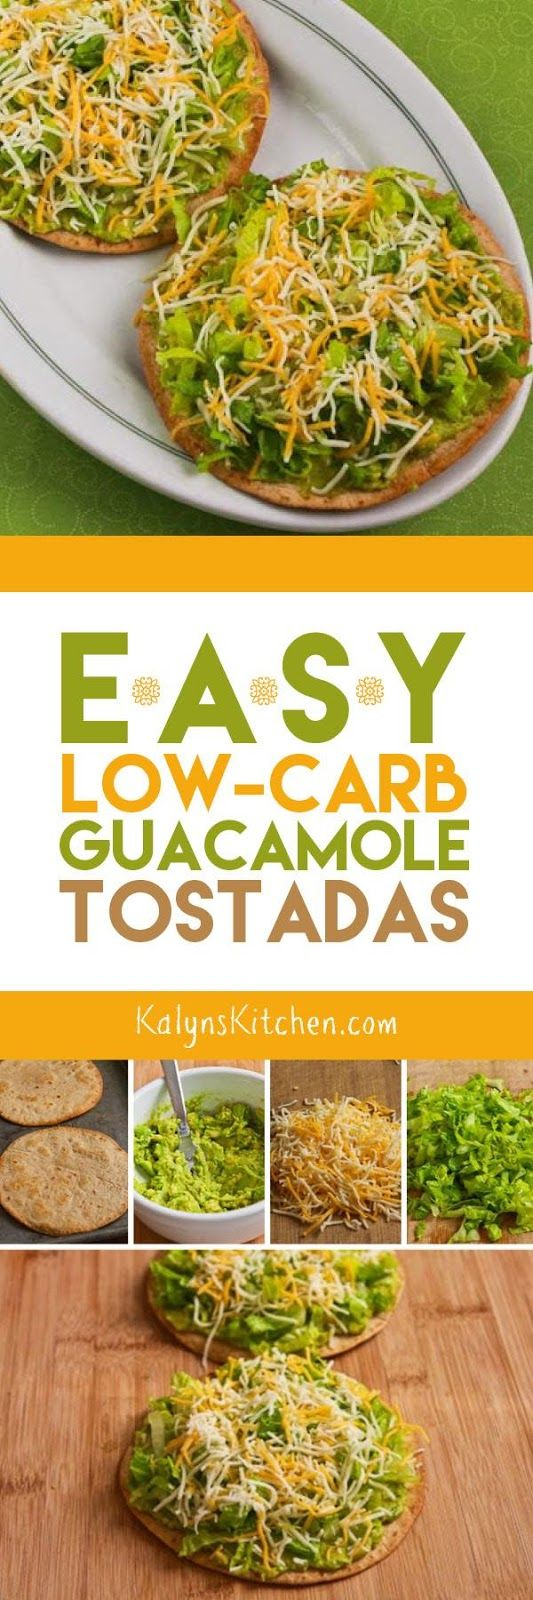 Easy Low-Carb Guacamole Tostadas are perfect when it's too hot to cook ...